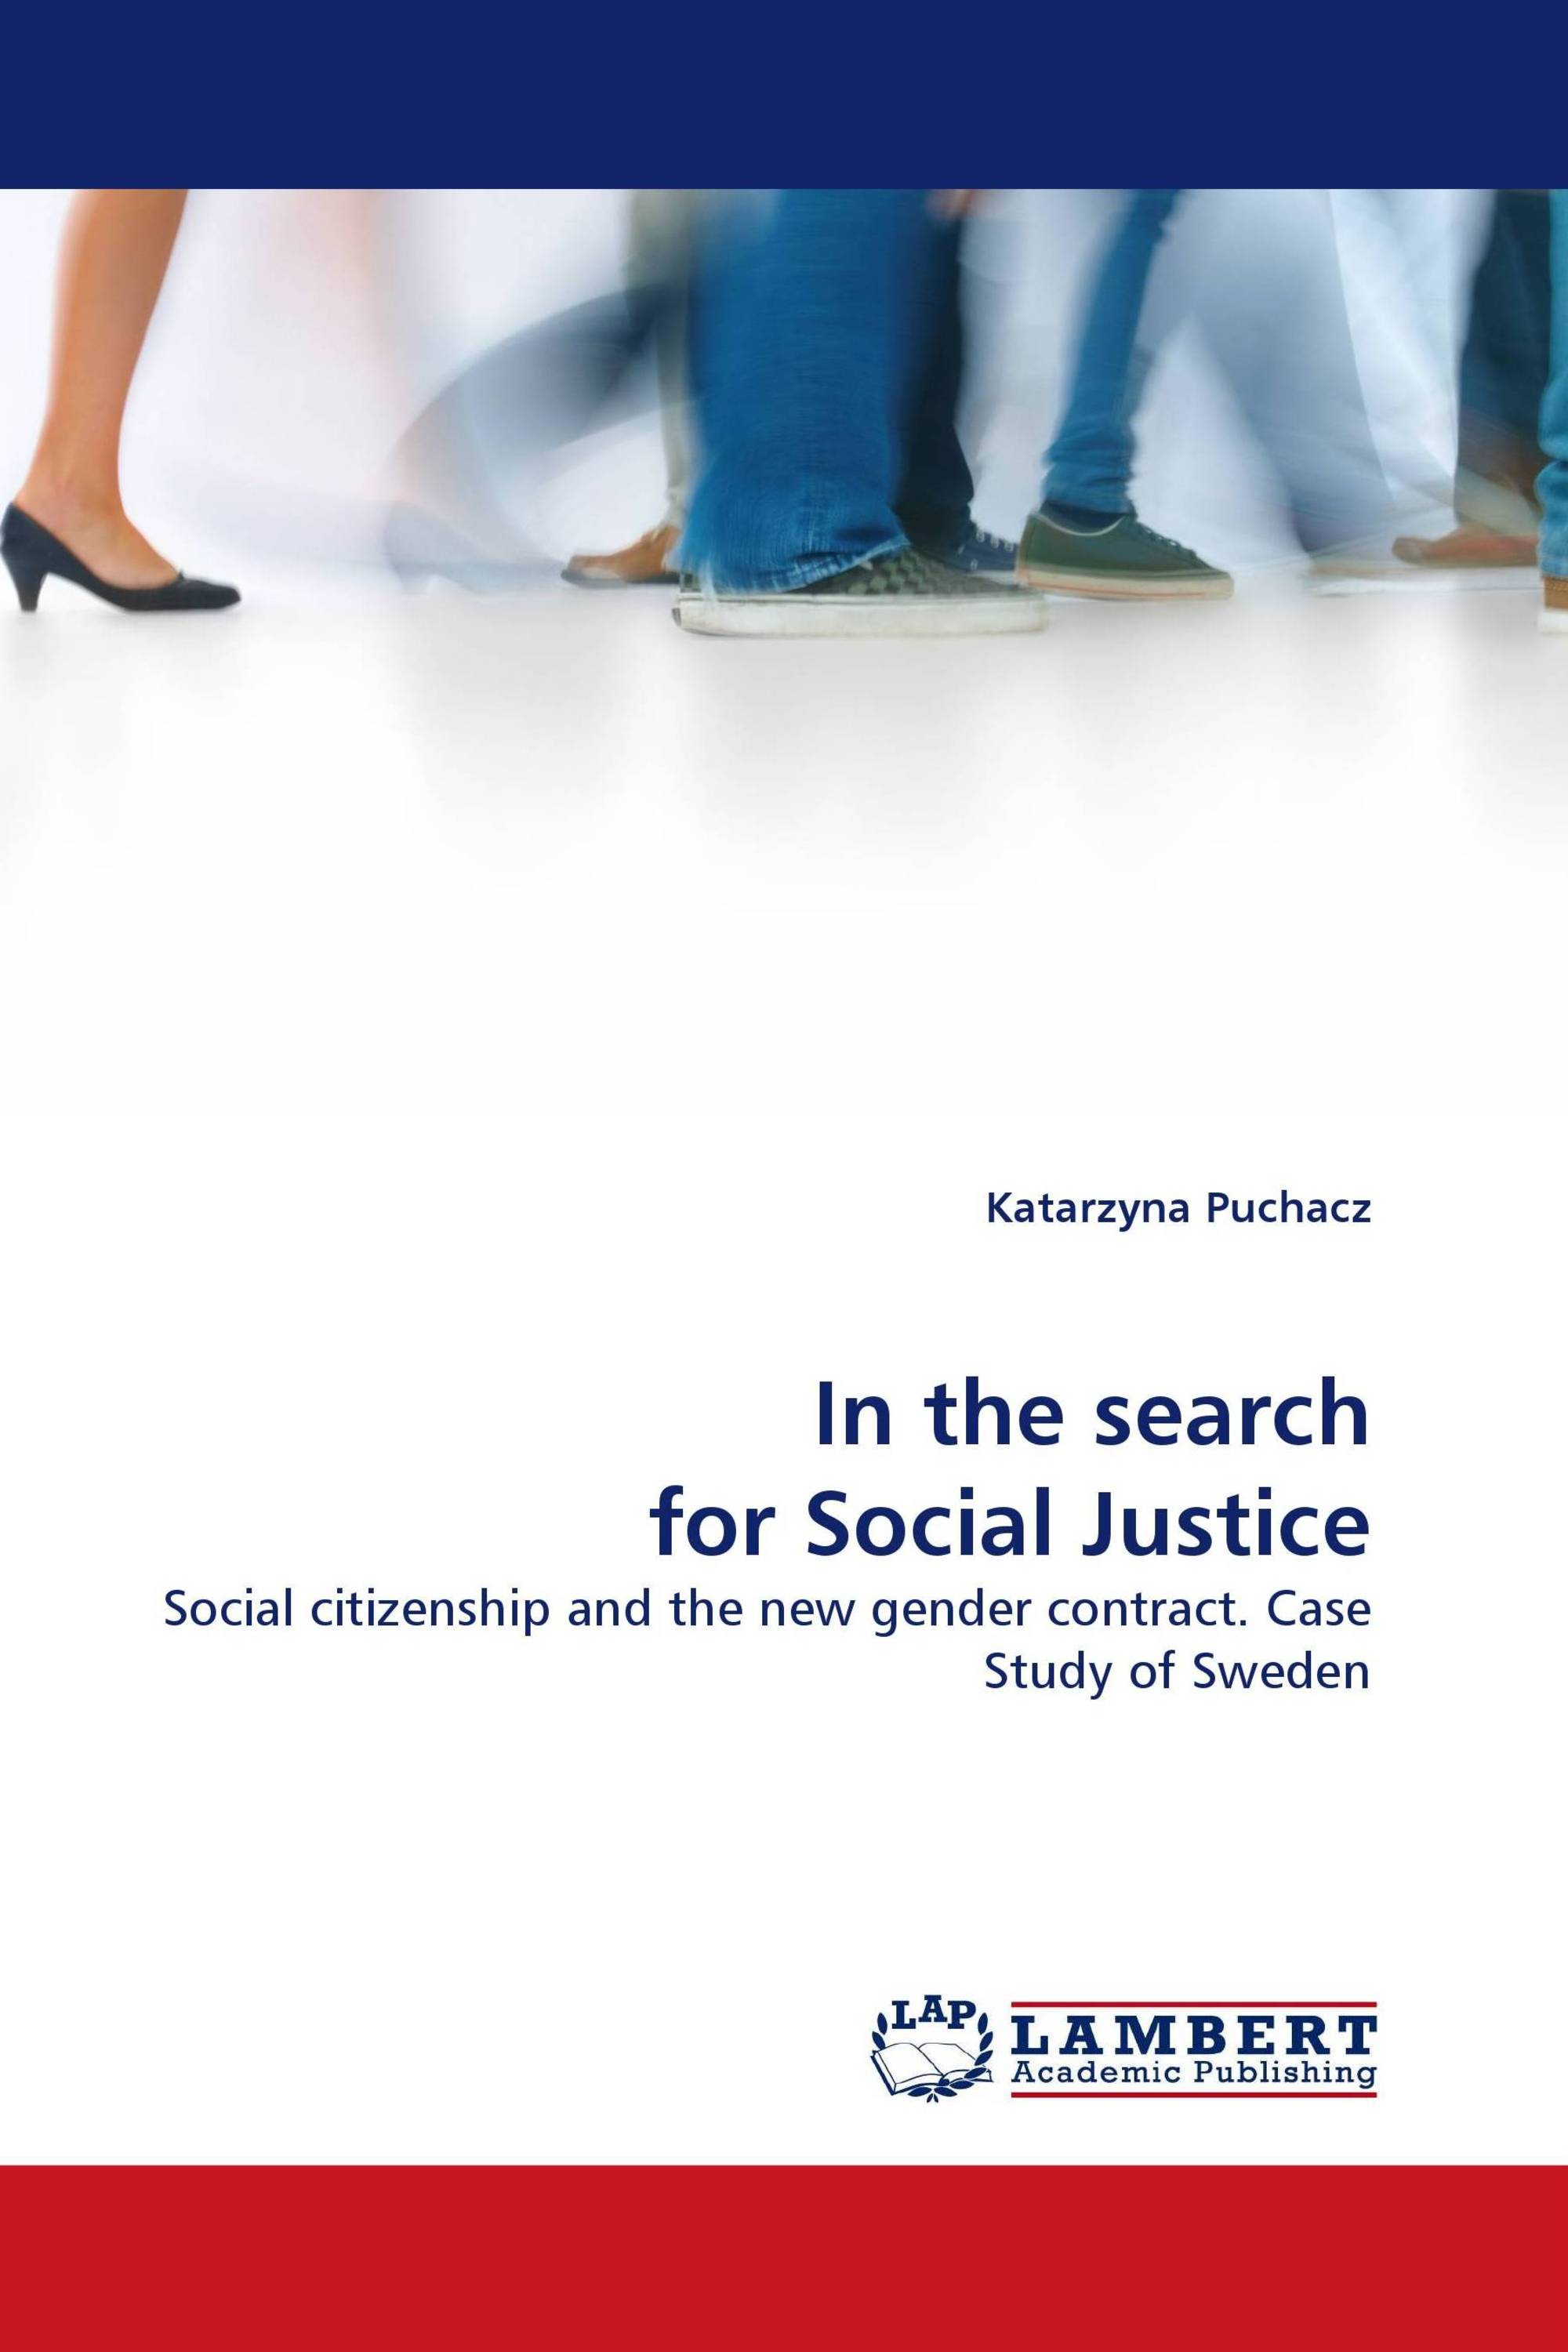 In the search for Social Justice